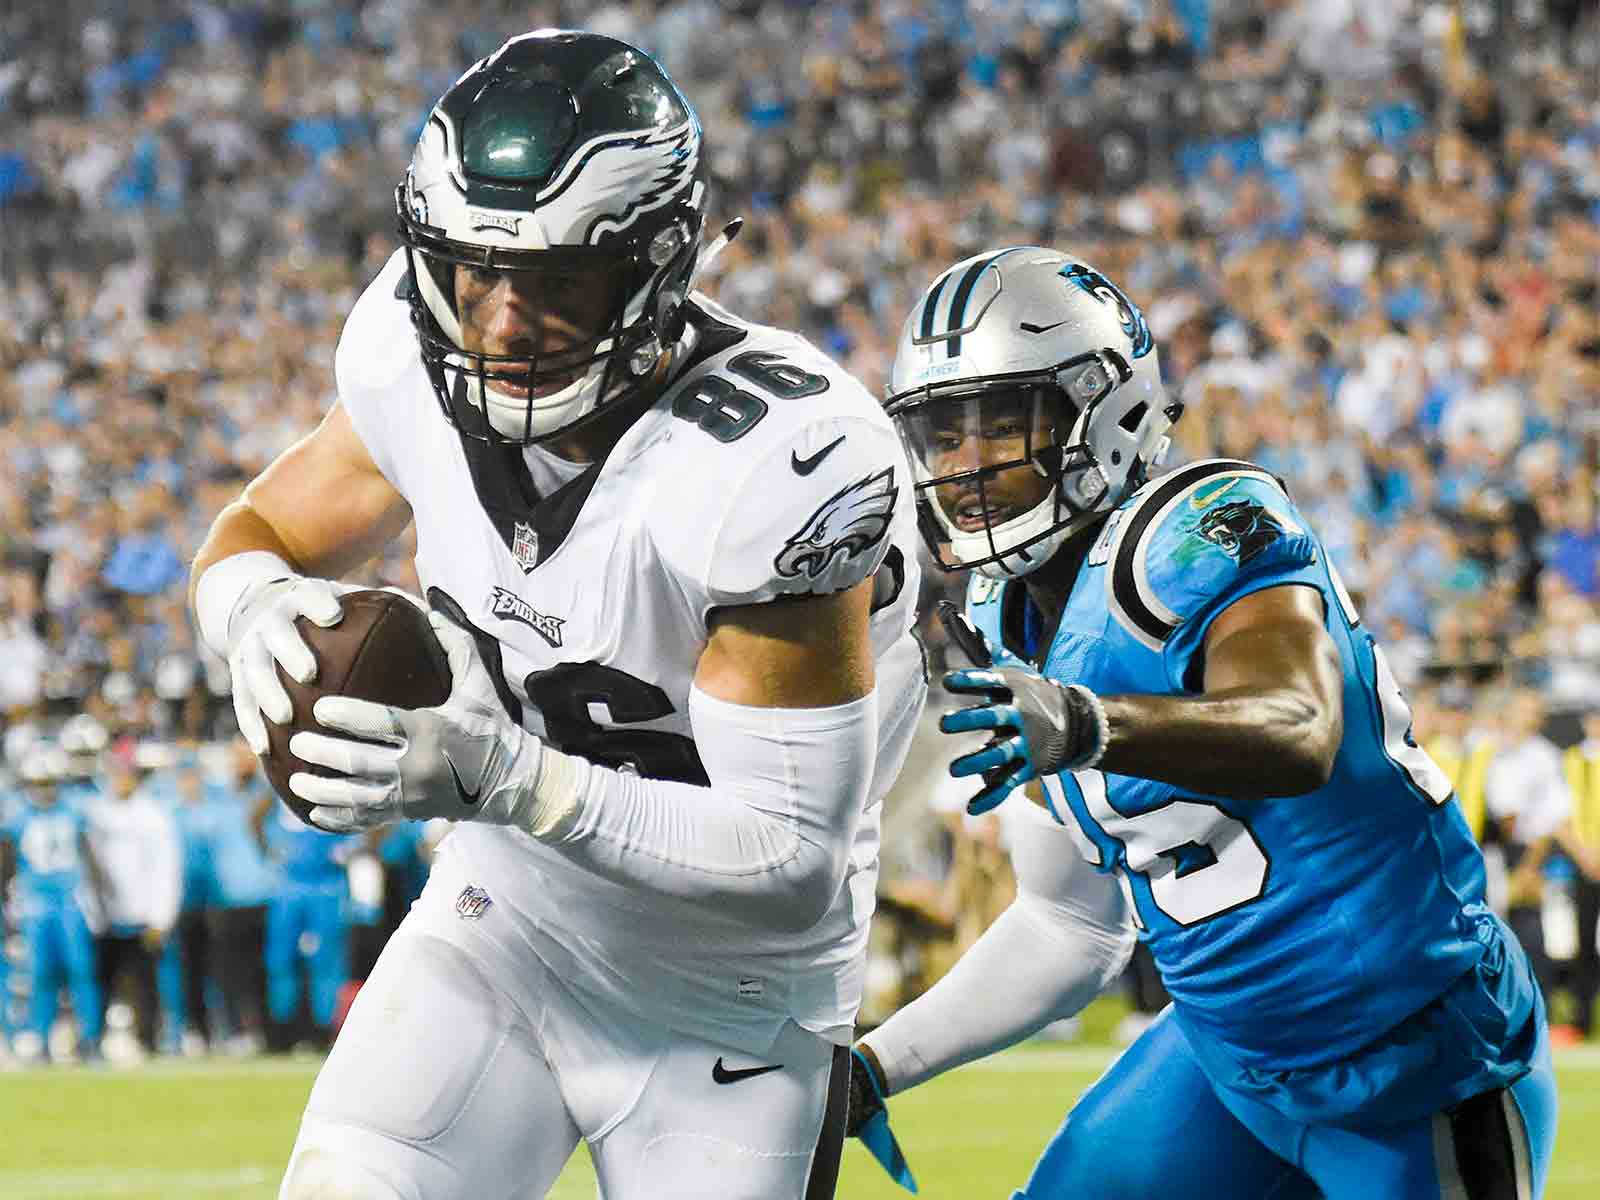 Philadelphia Eagles tight end Zach Ertz scores a touchdown against Carolina Panthers on Oct. 12. Sitting at 6-1 on the season, the Eagles have the best record in the NFL and are one of a handful of teams that has quickly righted the franchise ship. (Clem Murray/Philadelphia Inquirer/TNS)